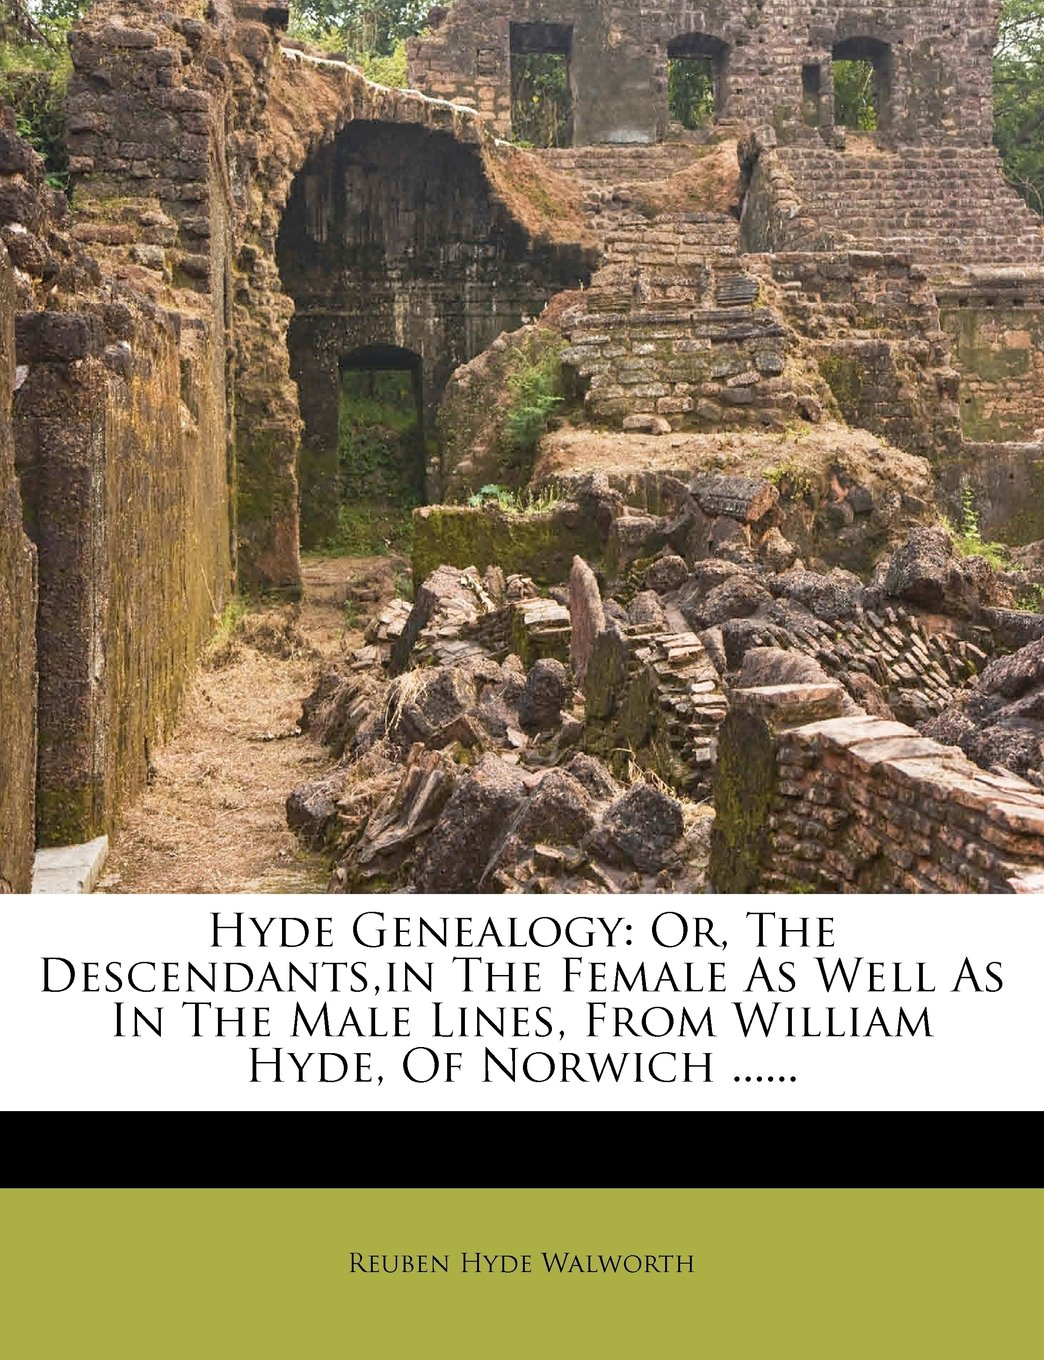 Hyde Genealogy: Or, The Descendants,in The Female As Well As In The Male Lines, From William Hyde, Of Norwich ebook